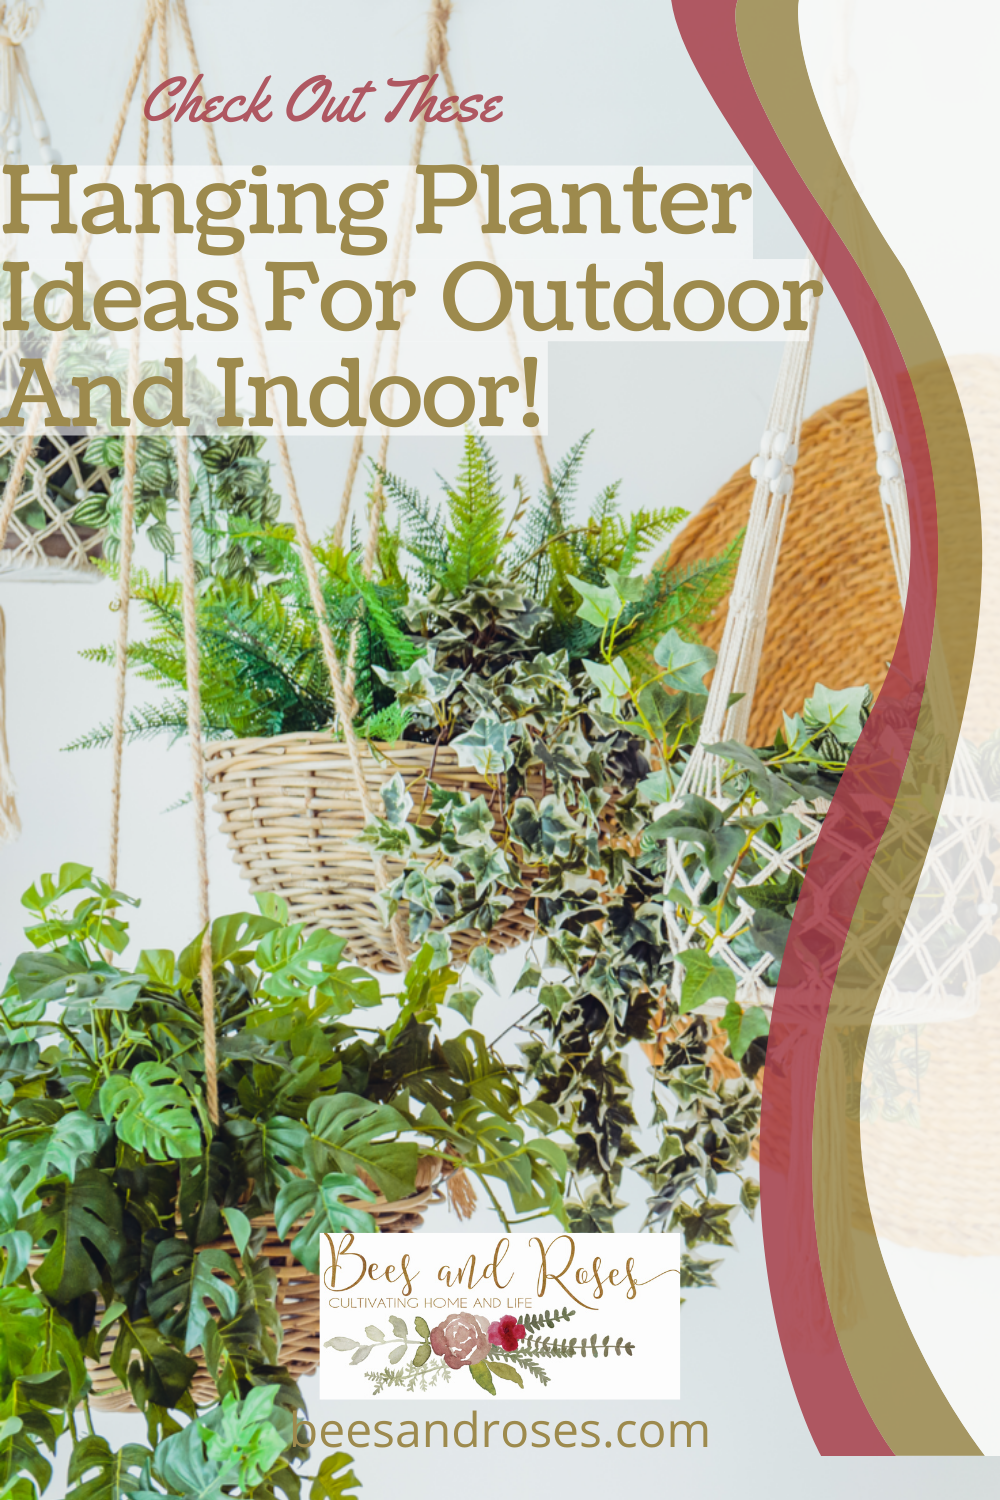 You can turn just about anything into a hanging planter that works with these easy DIY planter ideas. Use what you have around the house to pull these off. #beesandrosesblog #DIY #planters